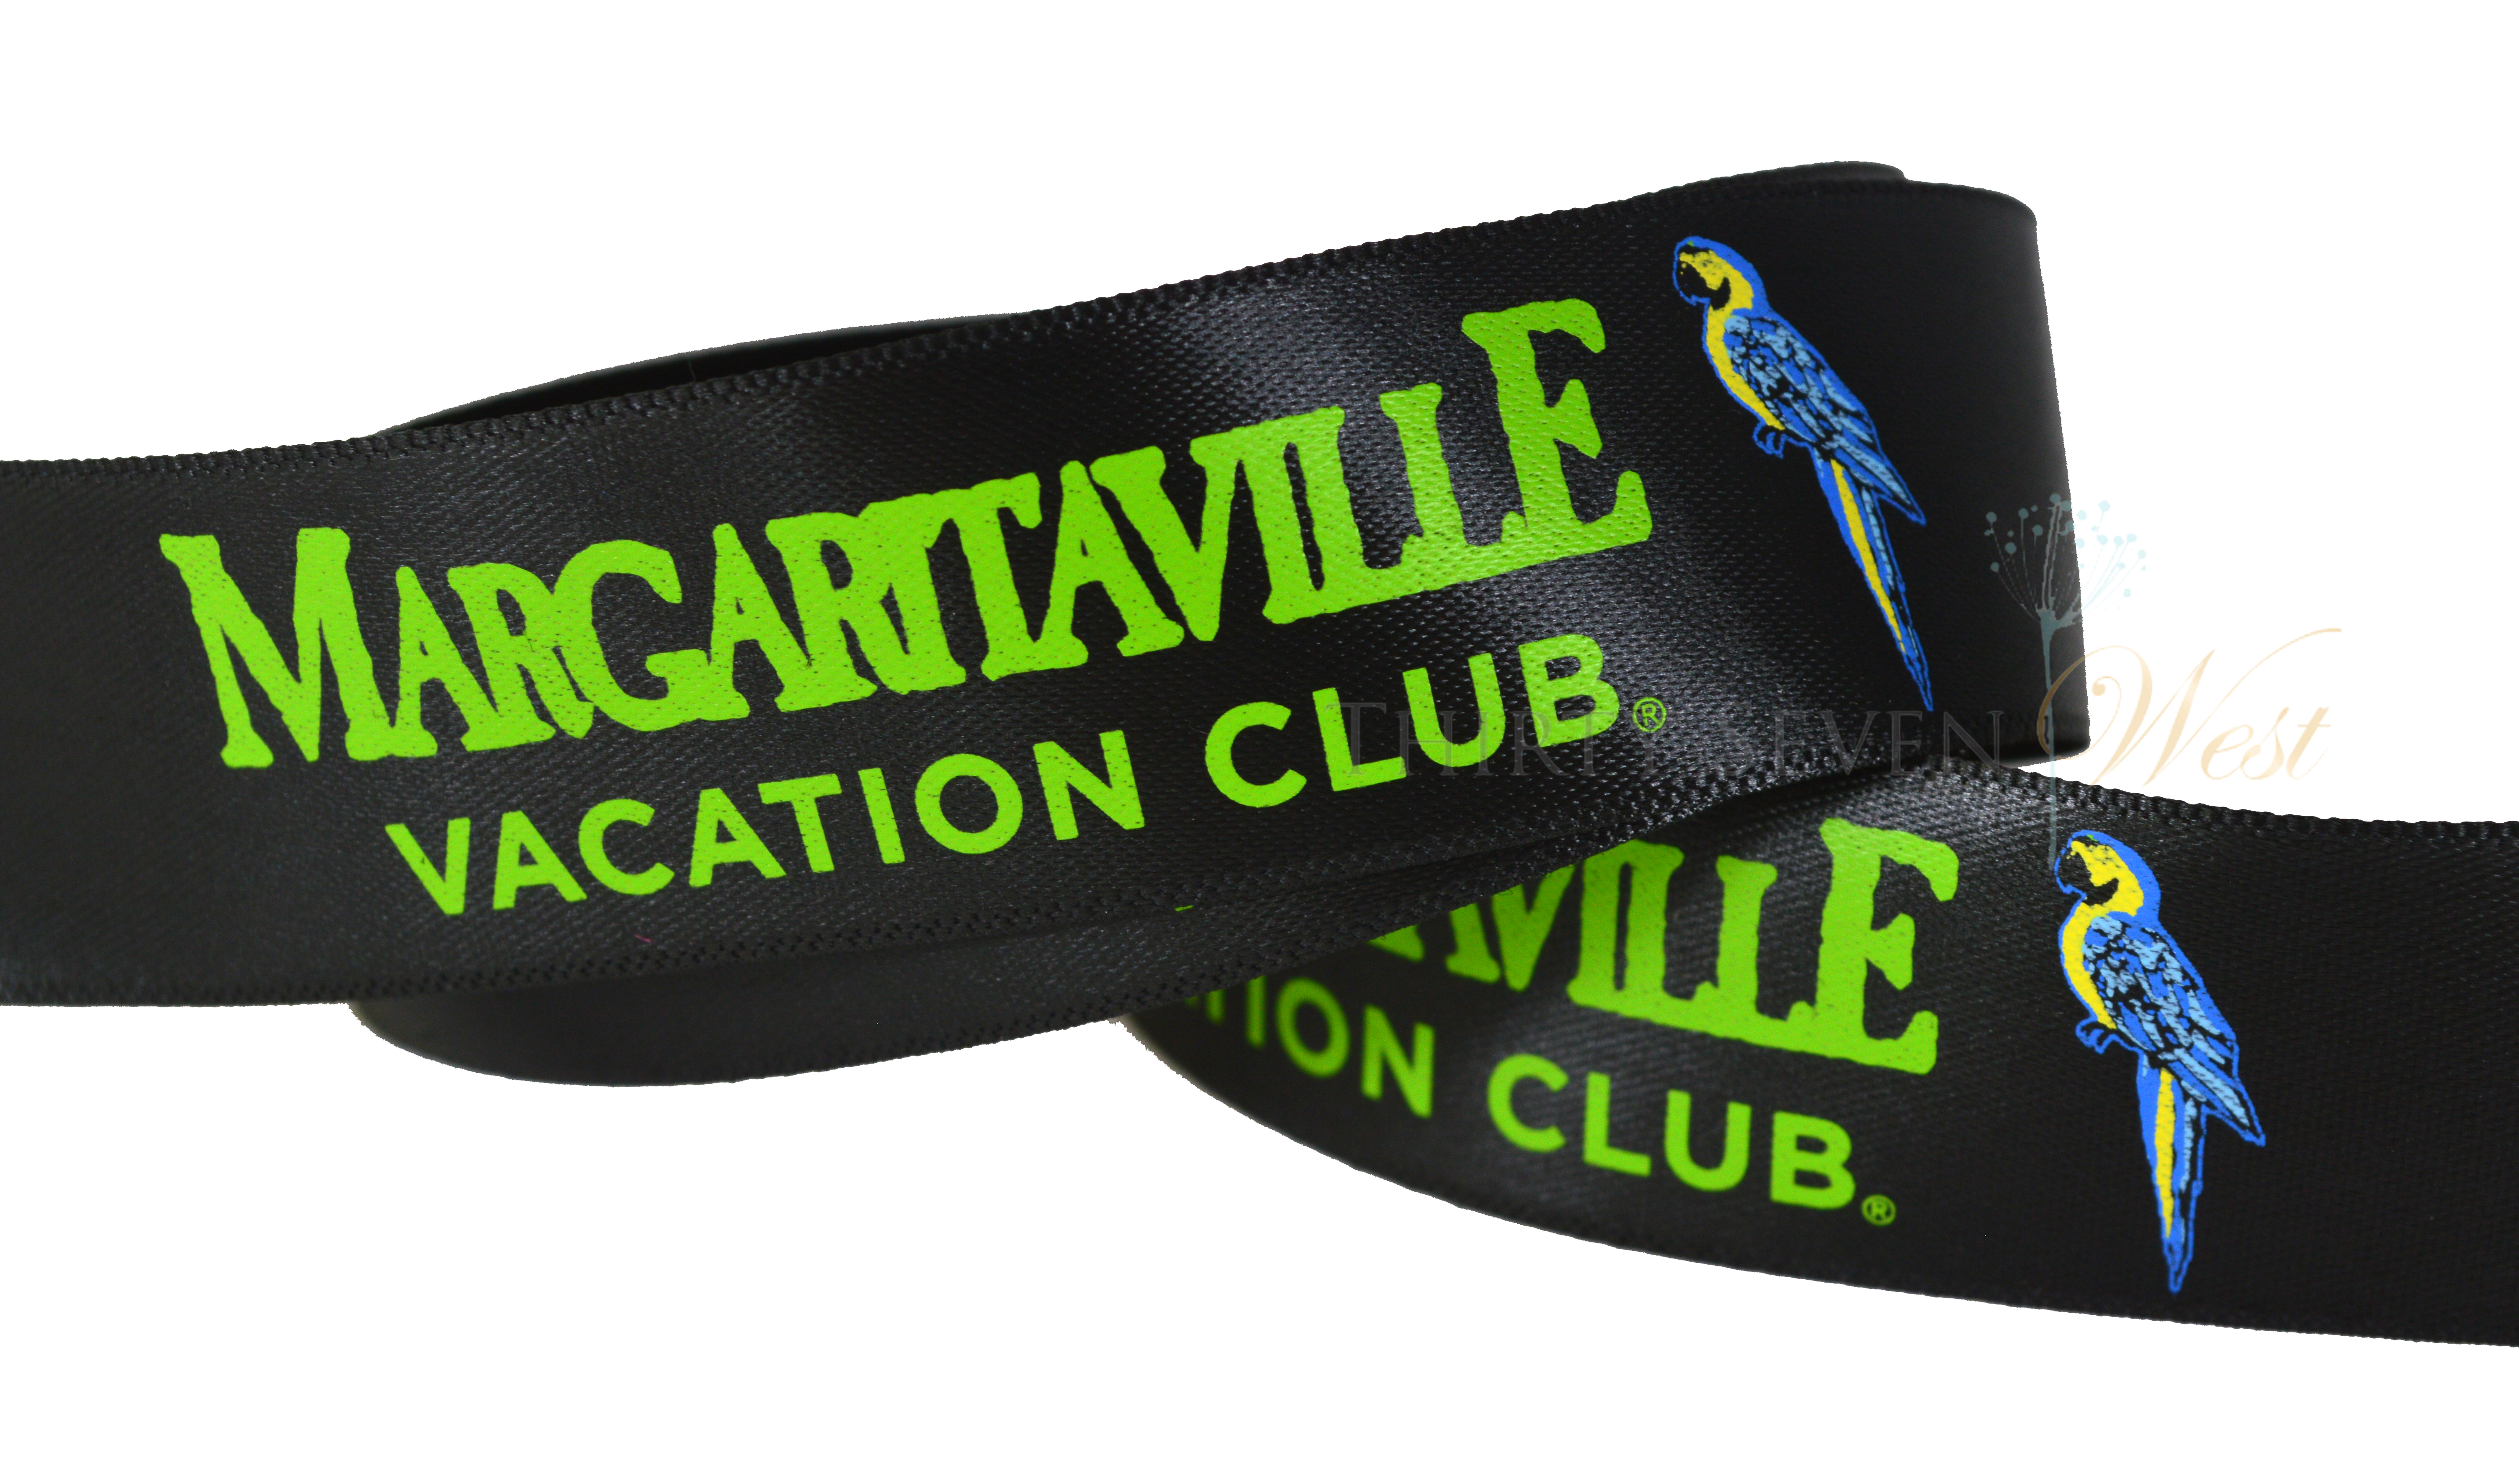 Margaritaville Custom Ribbon, Custom Ribbon, Custom Ribbon With Multi Color Logo, Ribbon With Multi Color Logo for company branding, Custom logo Ribbon, Custom branding ribbon, custom ribbon with logo, custom ribbon with company logo, custom branding ribbon